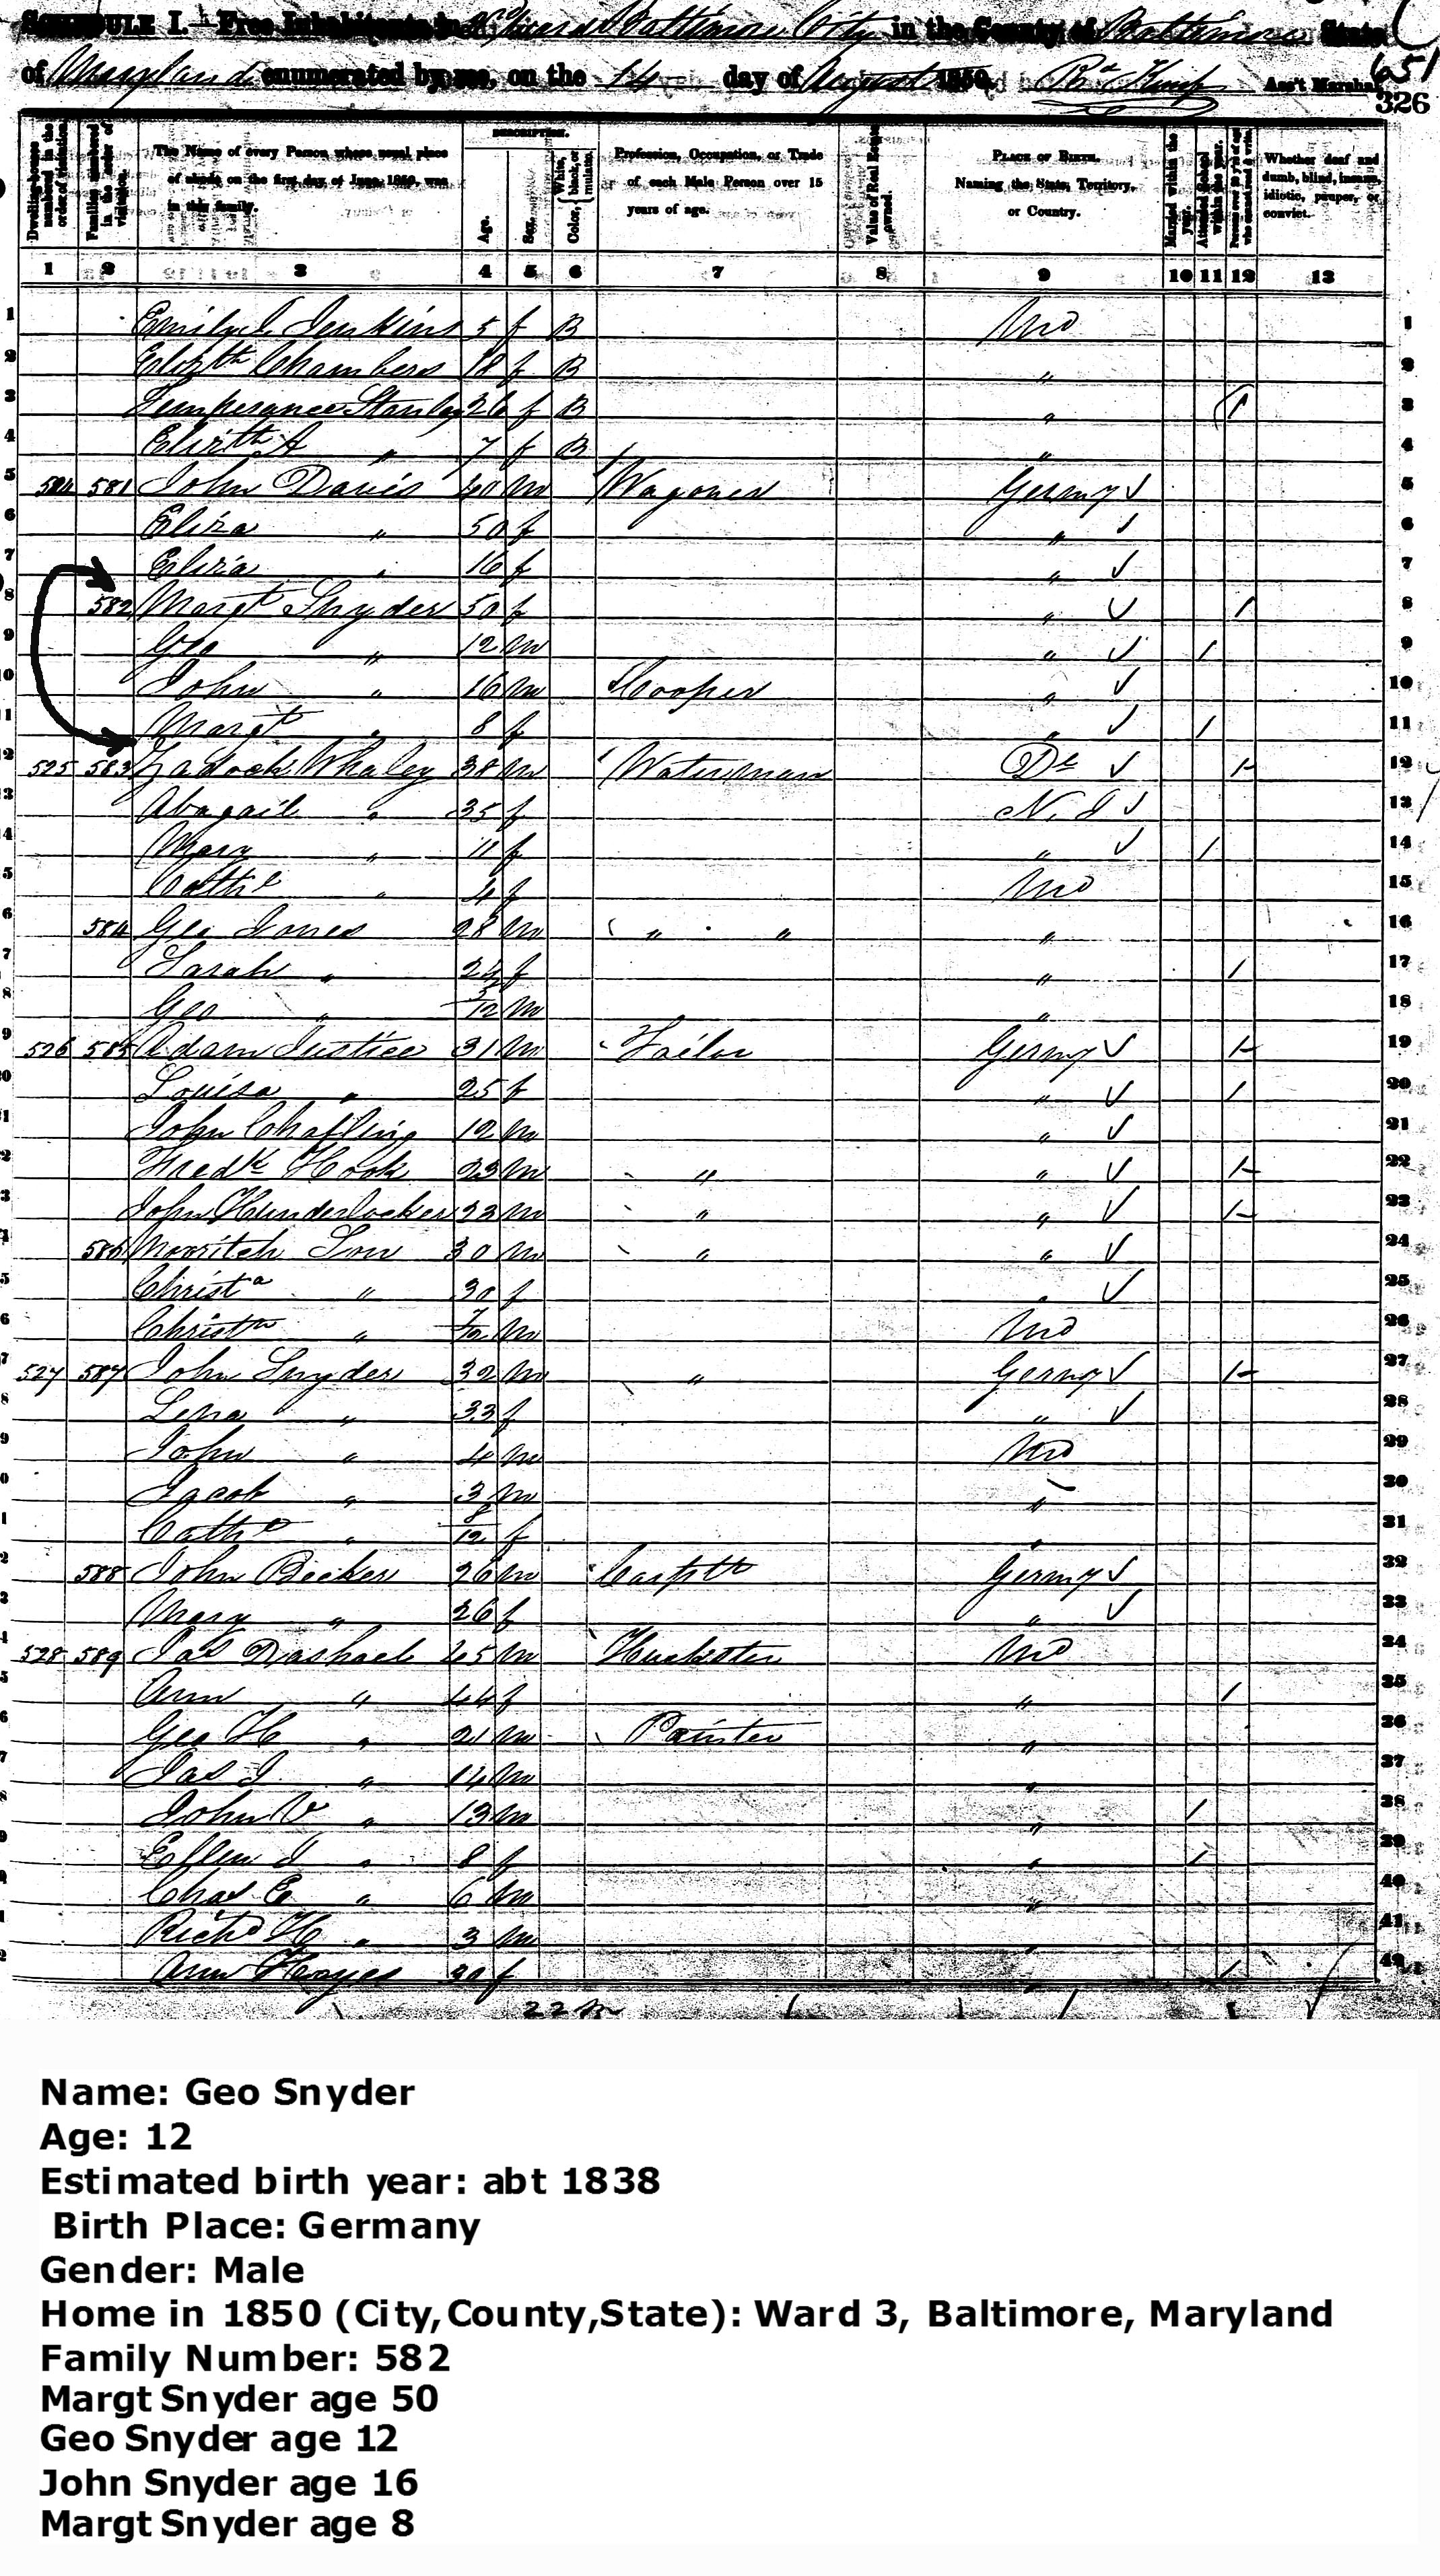 georgeschneider1850census.jpg